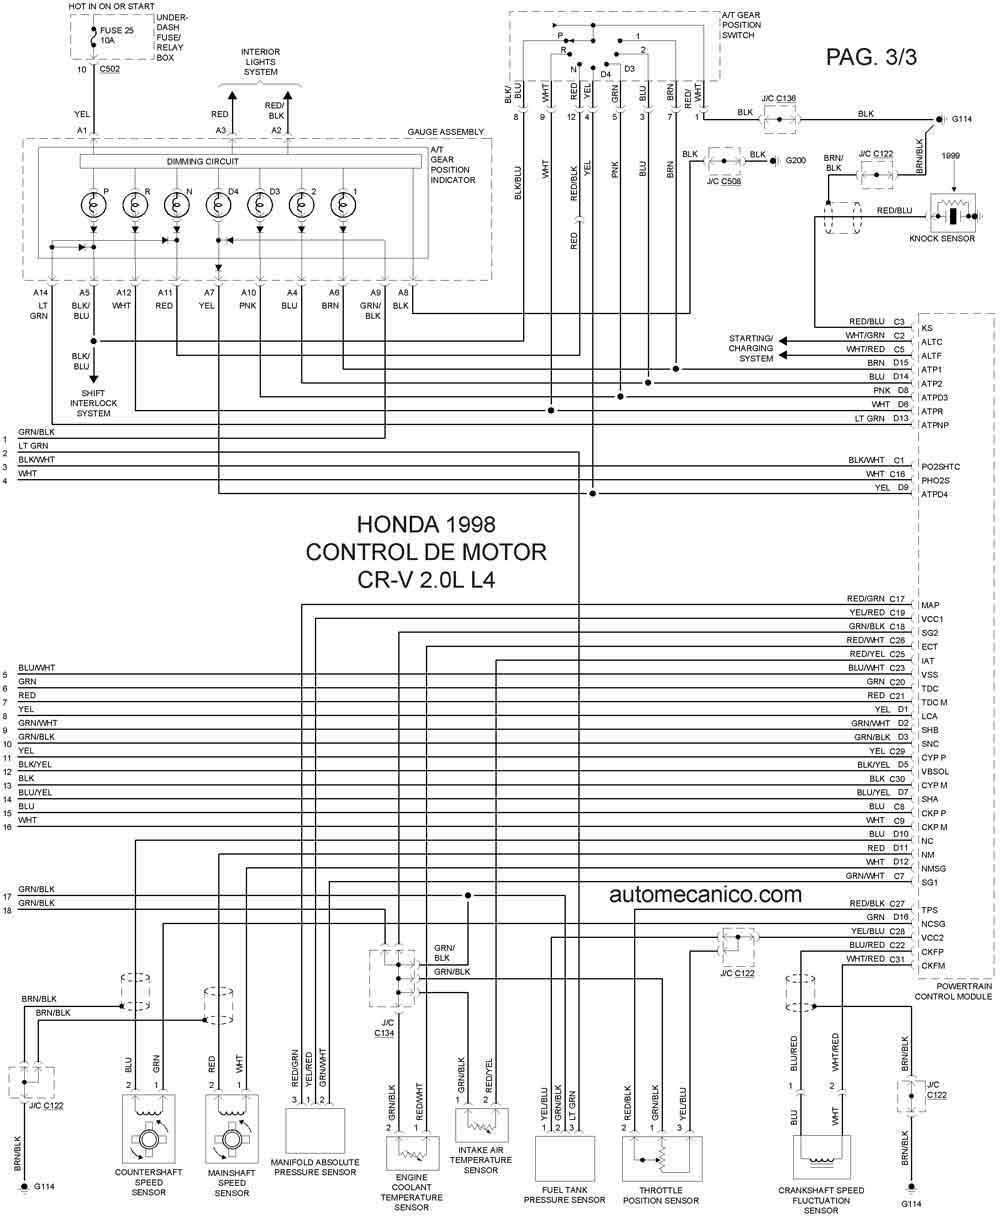 Honda Civic Diagram additionally Citroen Zx 1 8 1992 Specs And Images further Lincoln Navigator Wiring Diagram together with Showthread as well 360 V8 Engine Diagram. on 1994 vw jetta ignition wiring diagram